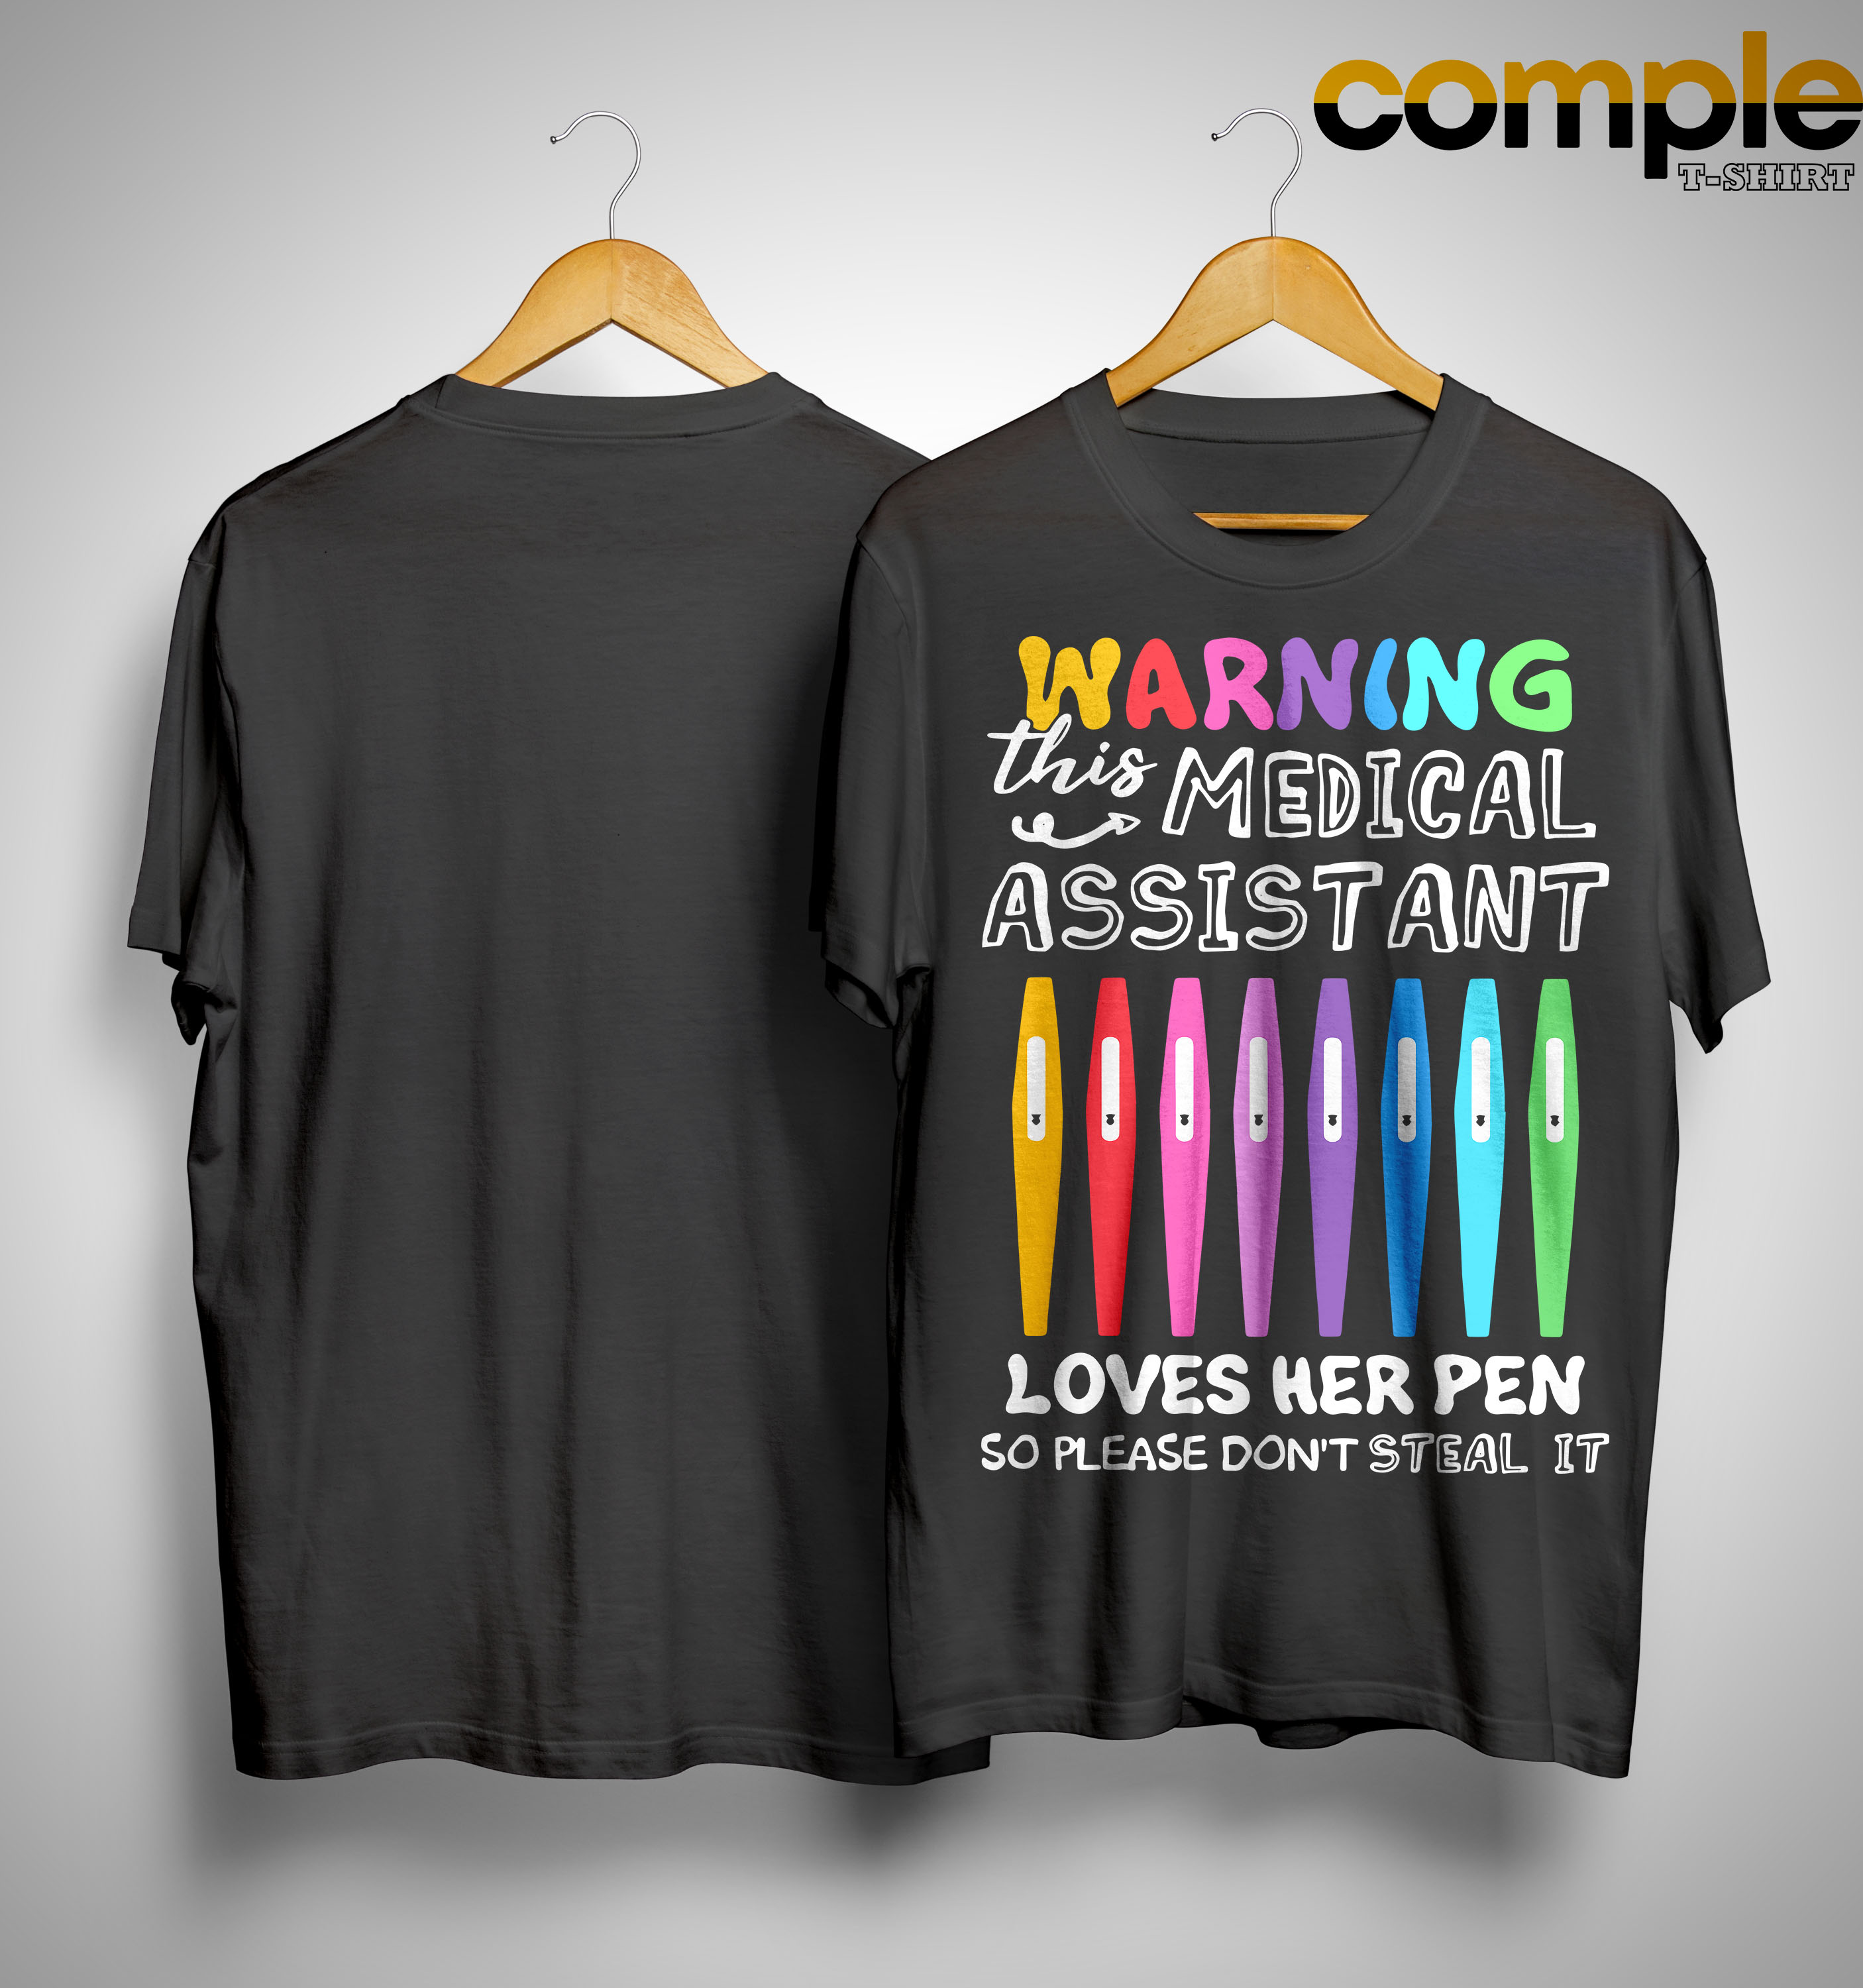 Warning This Medical Assistant Loves Her Pen So Please Don't Steal It Shirt